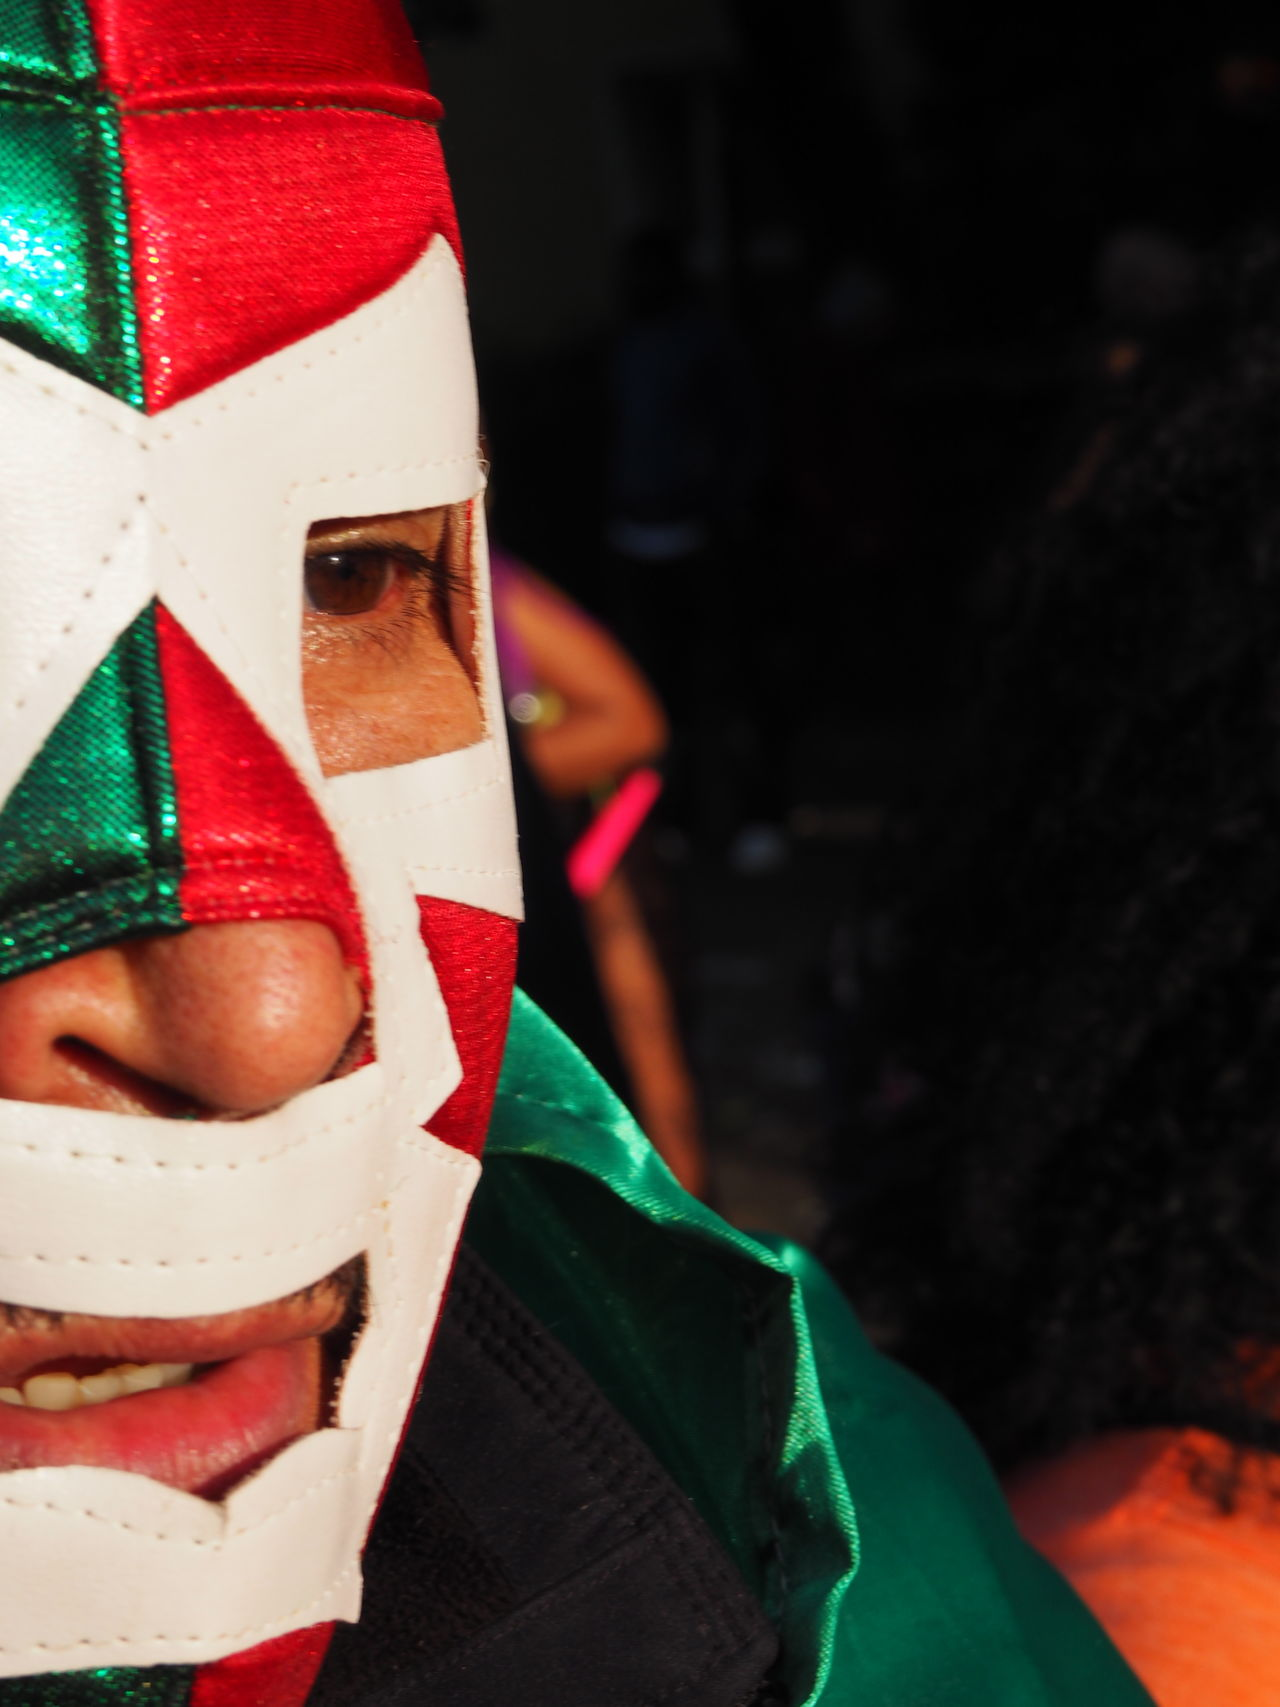 2016 Berlin Catch Celebration Close-up Cultures Day Green And Red Headwear Karnaval Der Kulturen Mask Masked Man Maskedportraits Mexican Mexican Catch Mexican Style Mexico Outdoors People Portrait Shiny Tradition Unrecognizable Person Wrapped TCPM